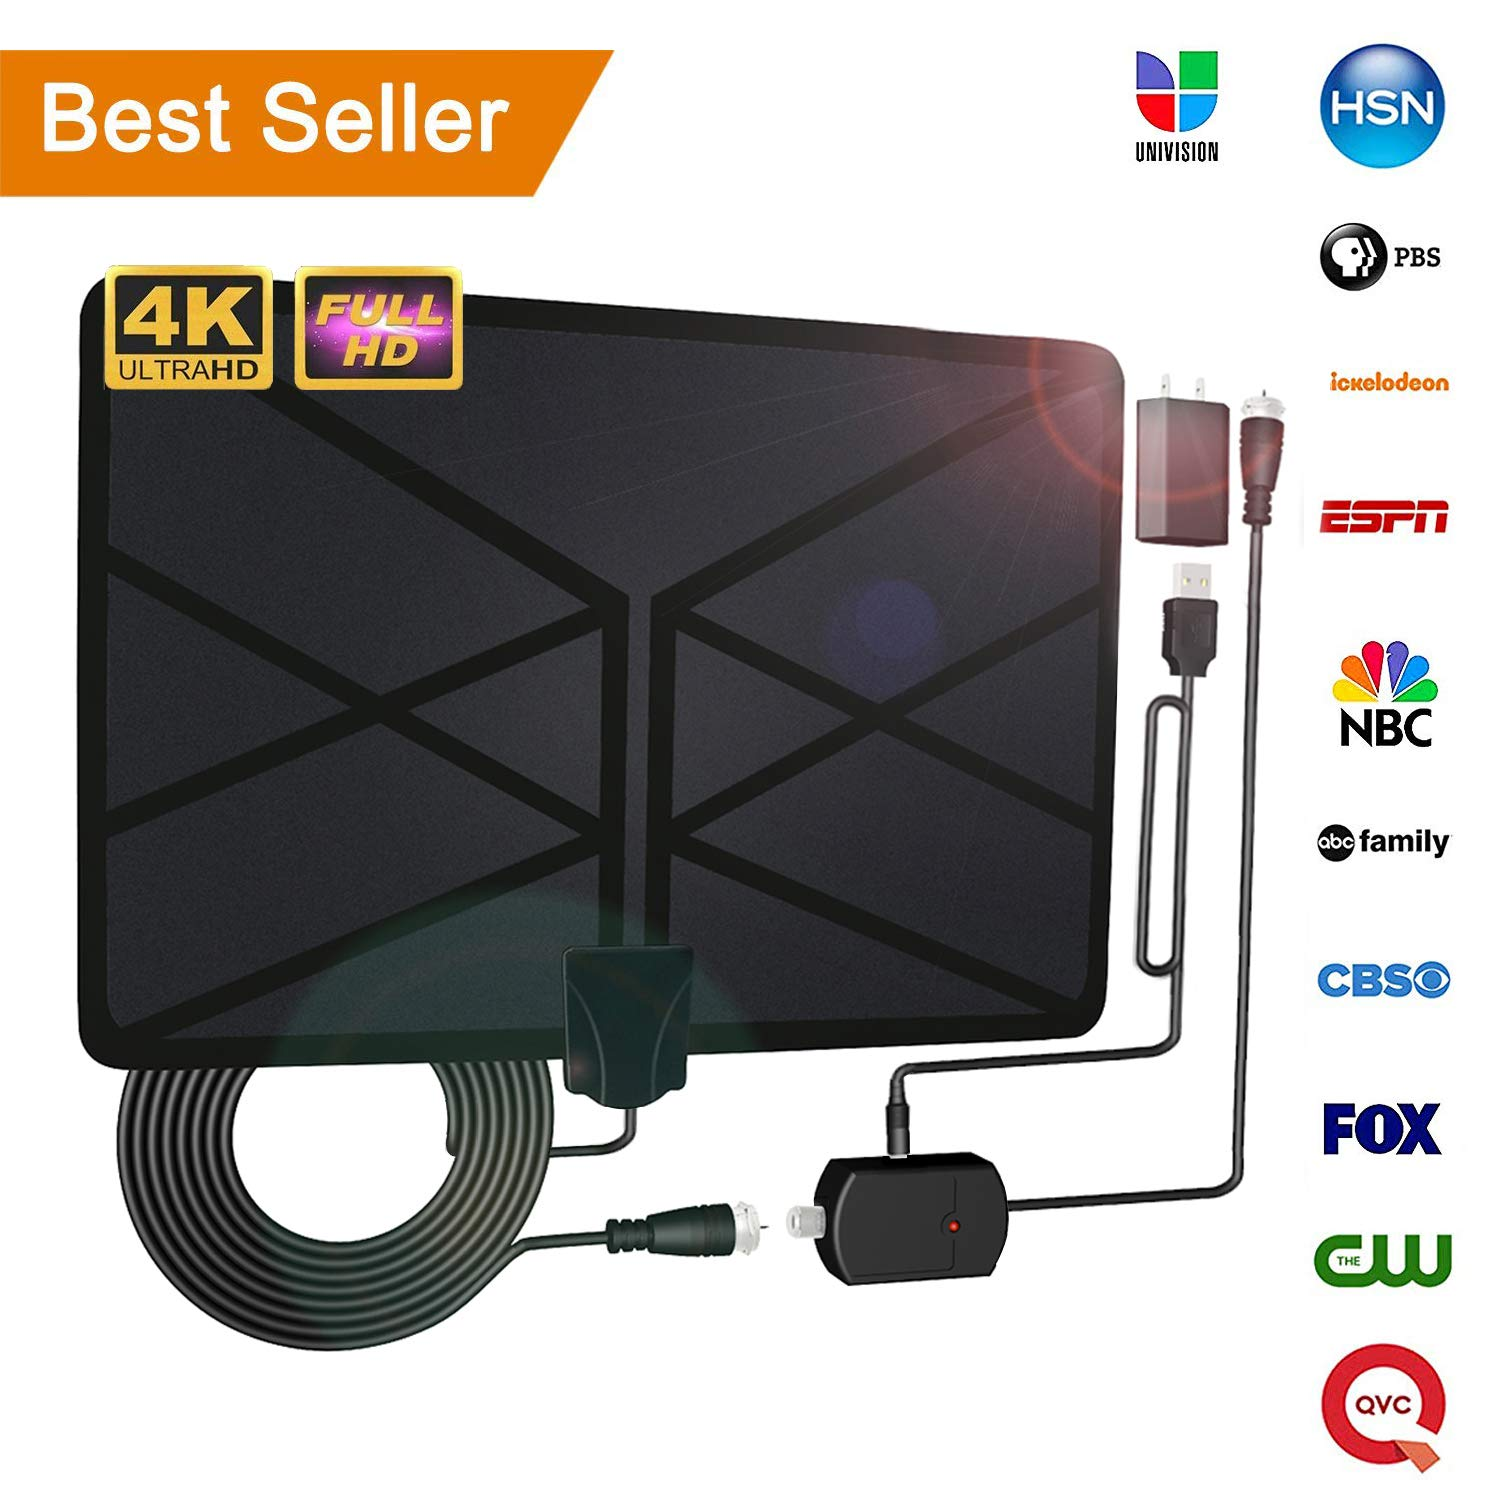 2019 Newest TV Antenna,Indoor Amplified Digital HDTV Antenna 120+ Mile Range with 4K 1080P HD VHF UHF Freeview TV for Life Local Channels Broadcast for All Types of Home Smart Television (Black)